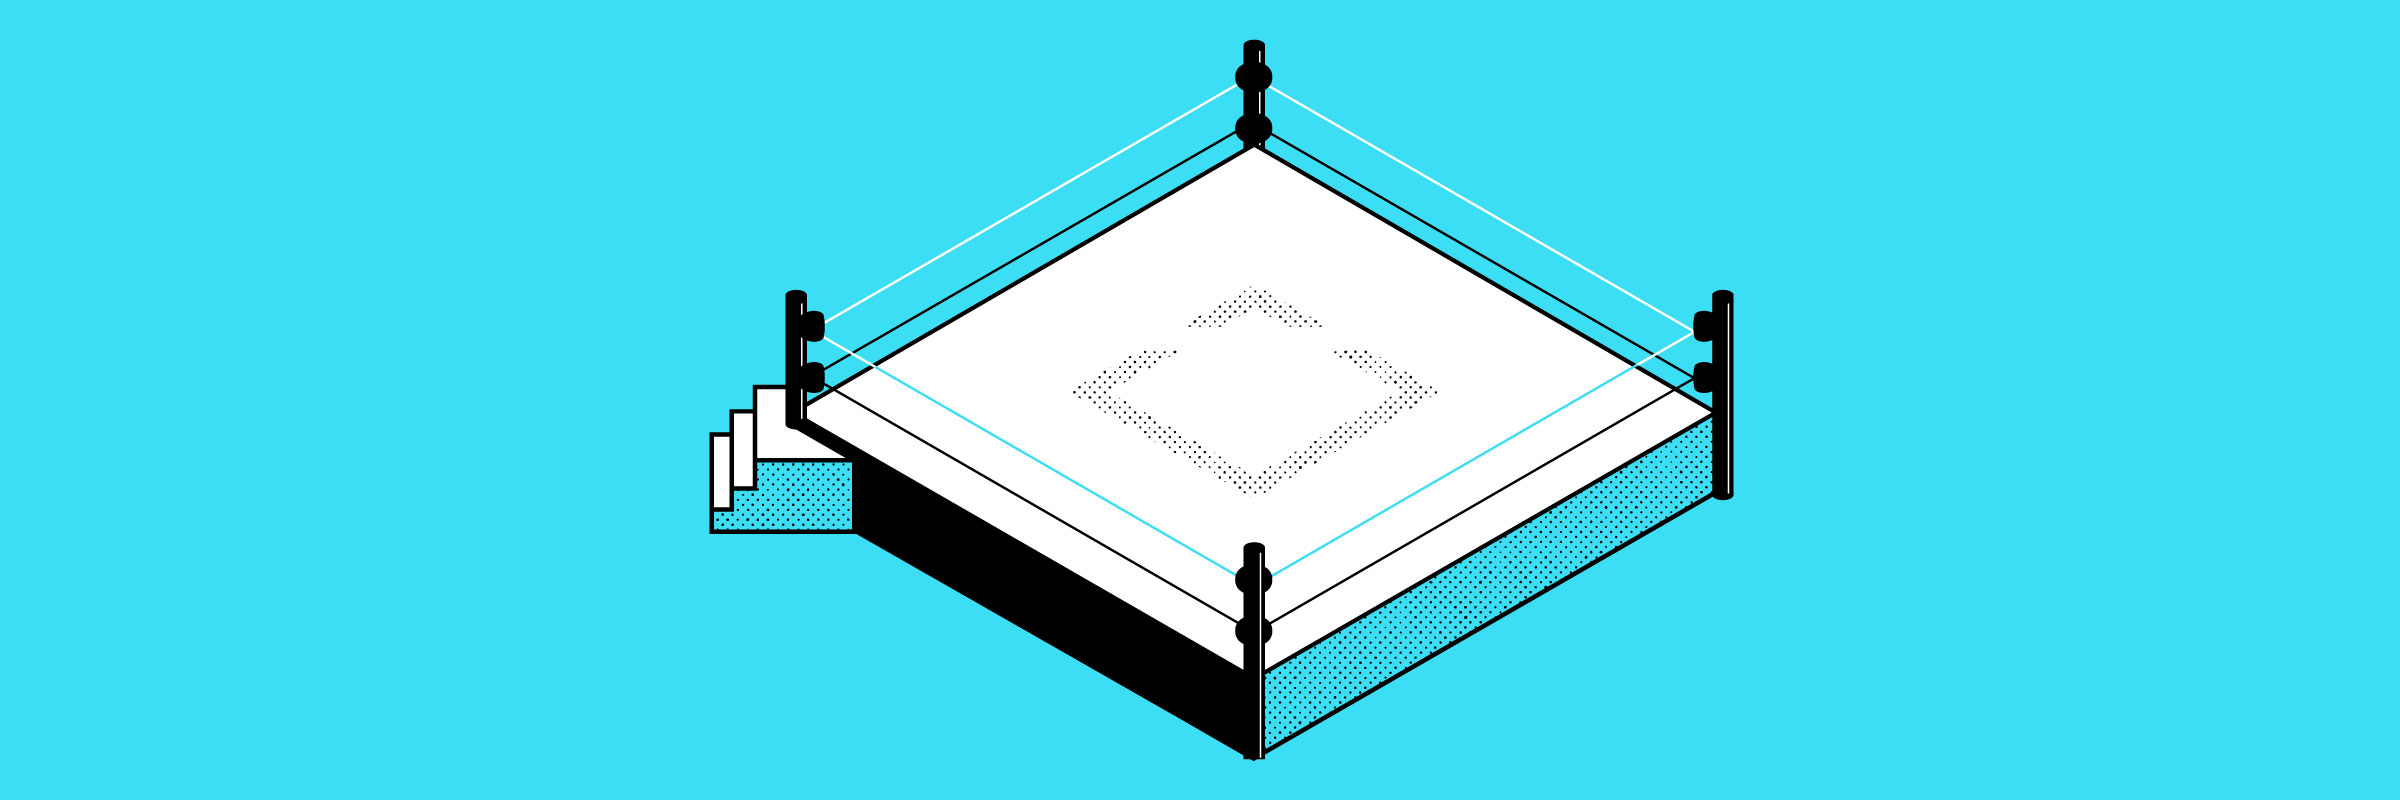 Illustration of a boxing ring